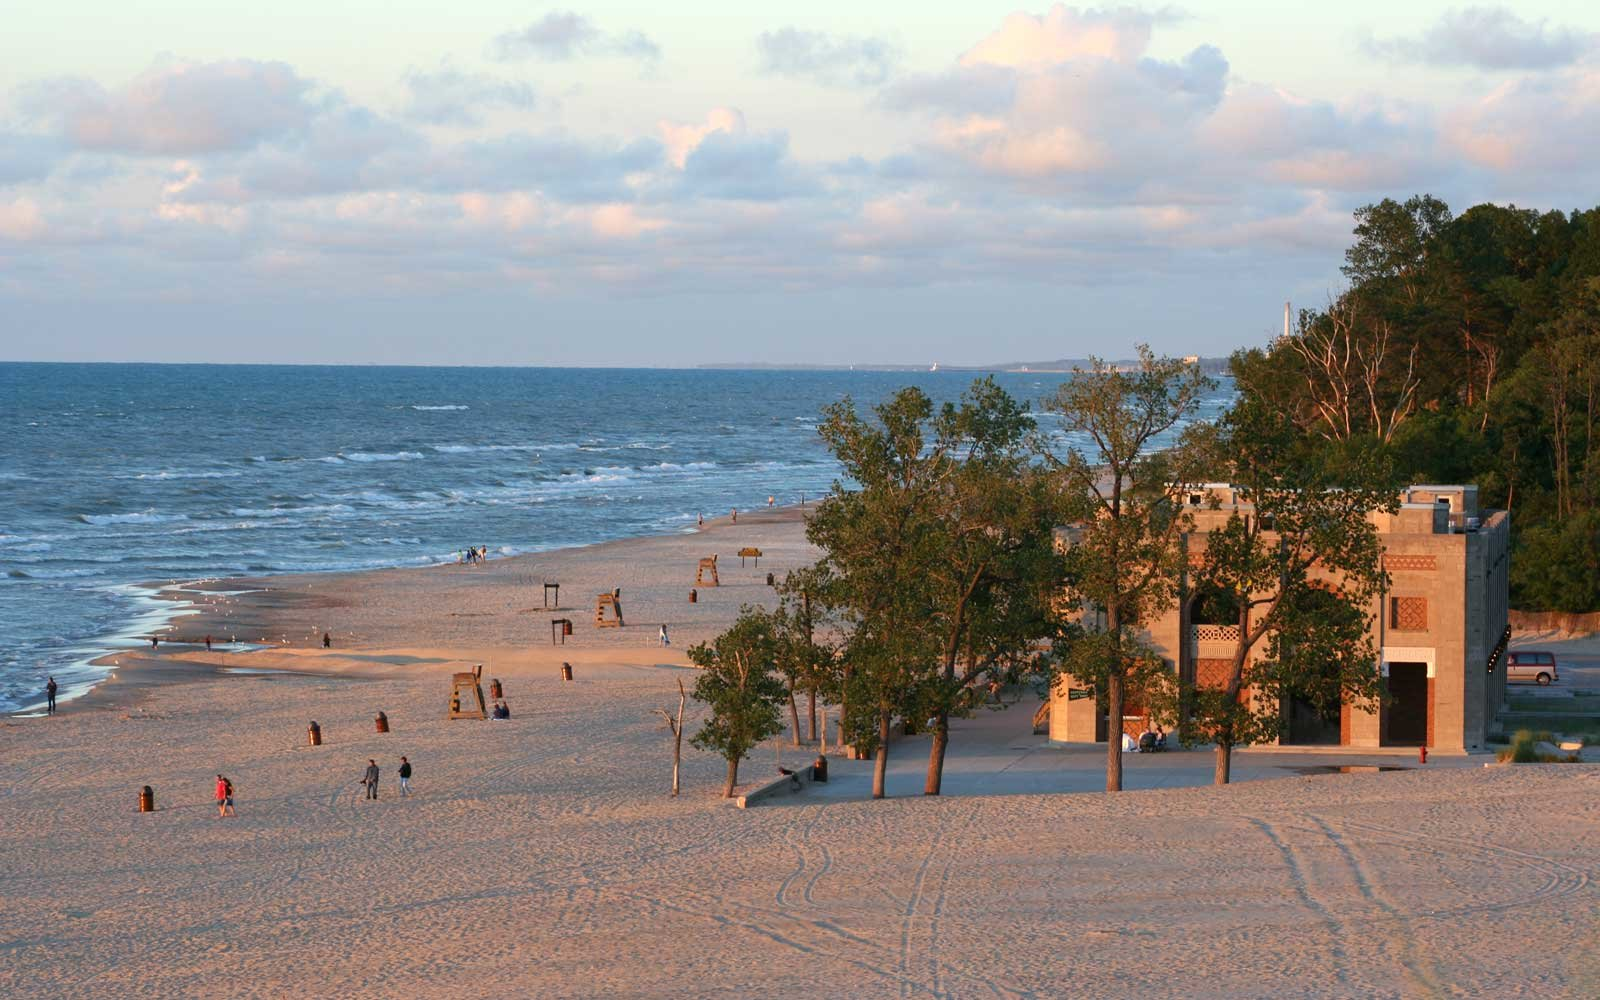 Lake Michigan and Indiana Shores National Park